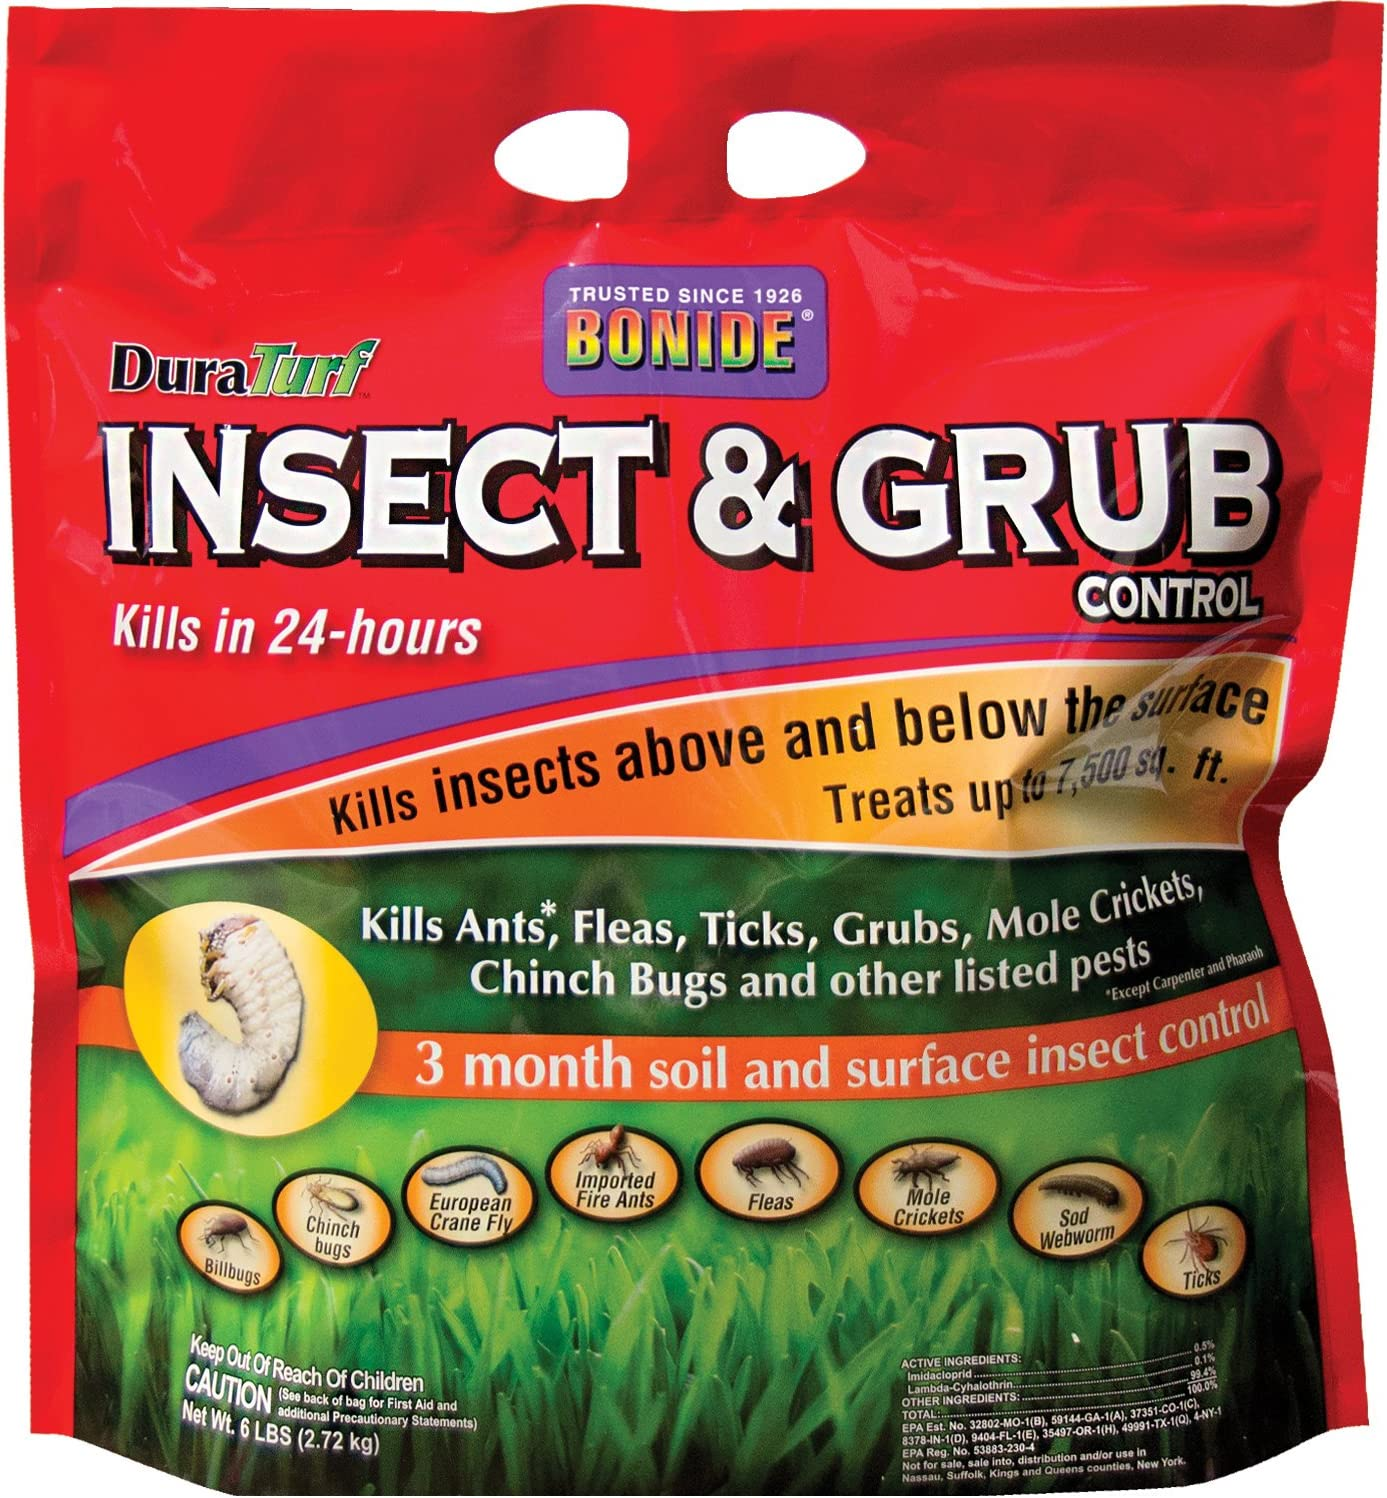 Bonide Insect and Grub Control